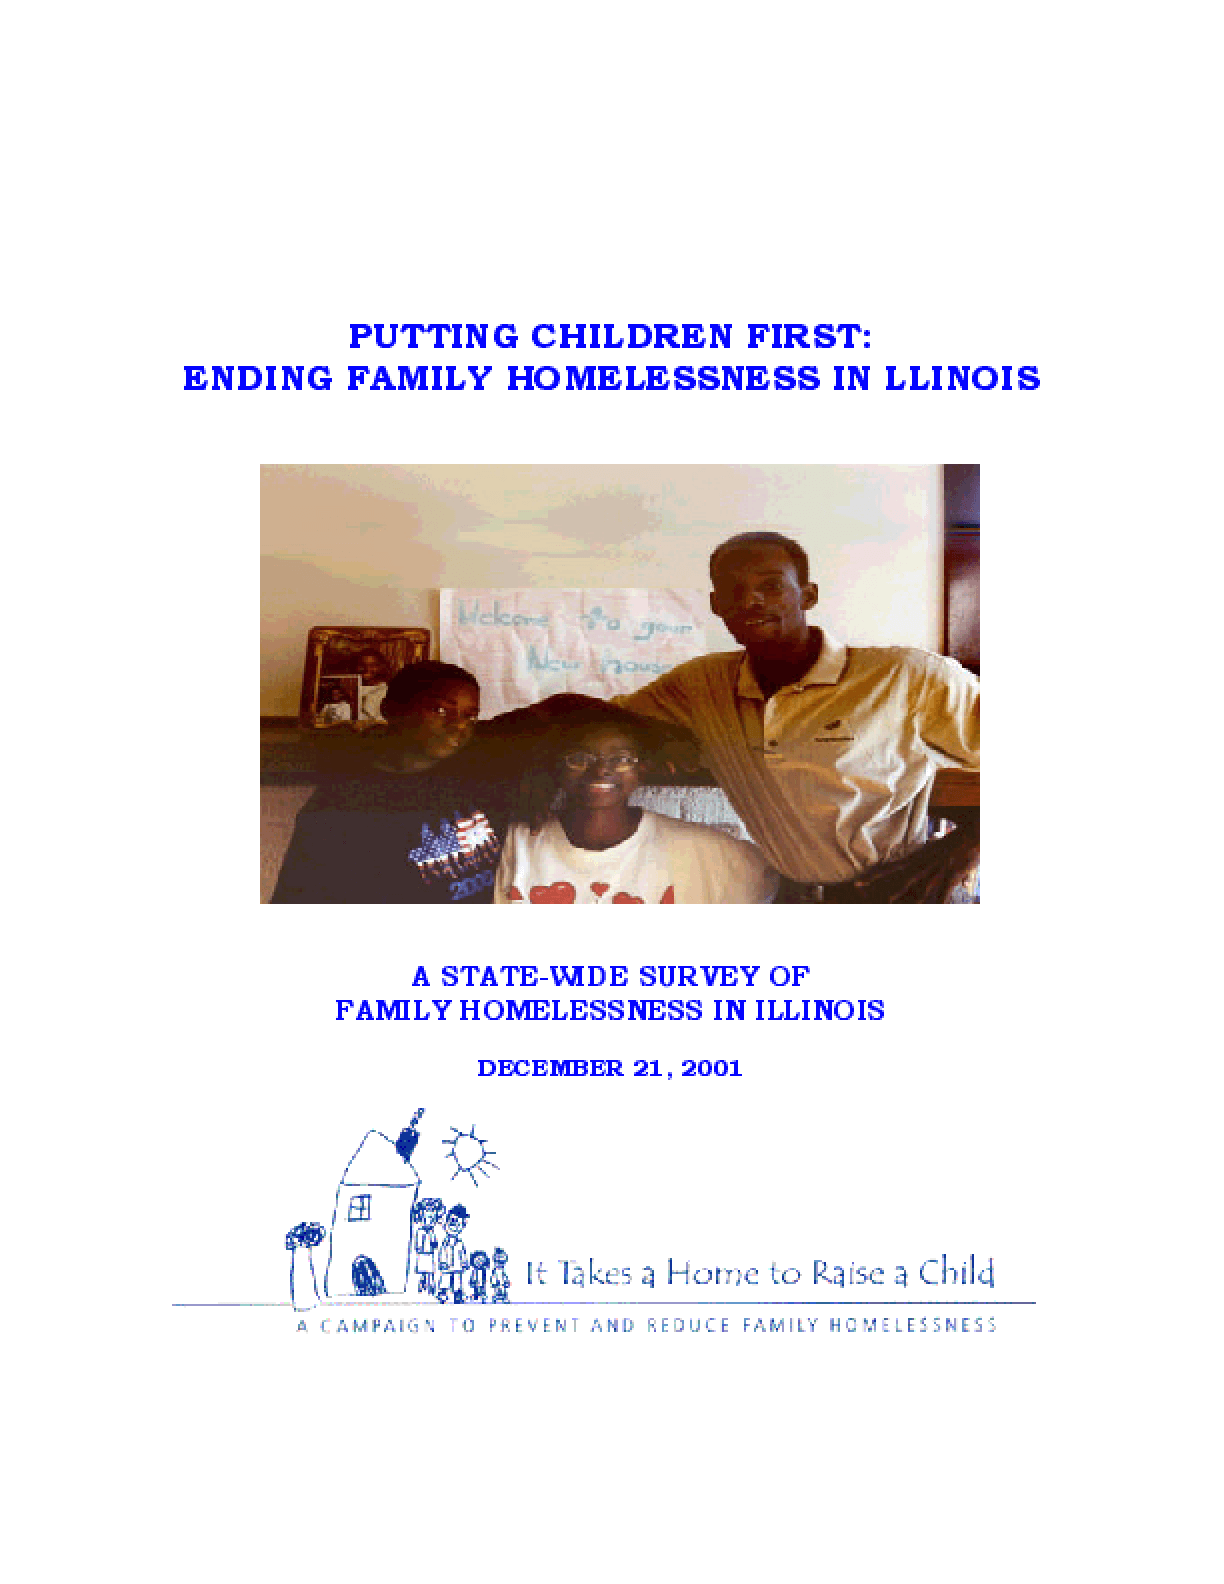 Putting Children First: Ending Family Homelessness In Illinois: A Statewide Survey on Family Homelessness